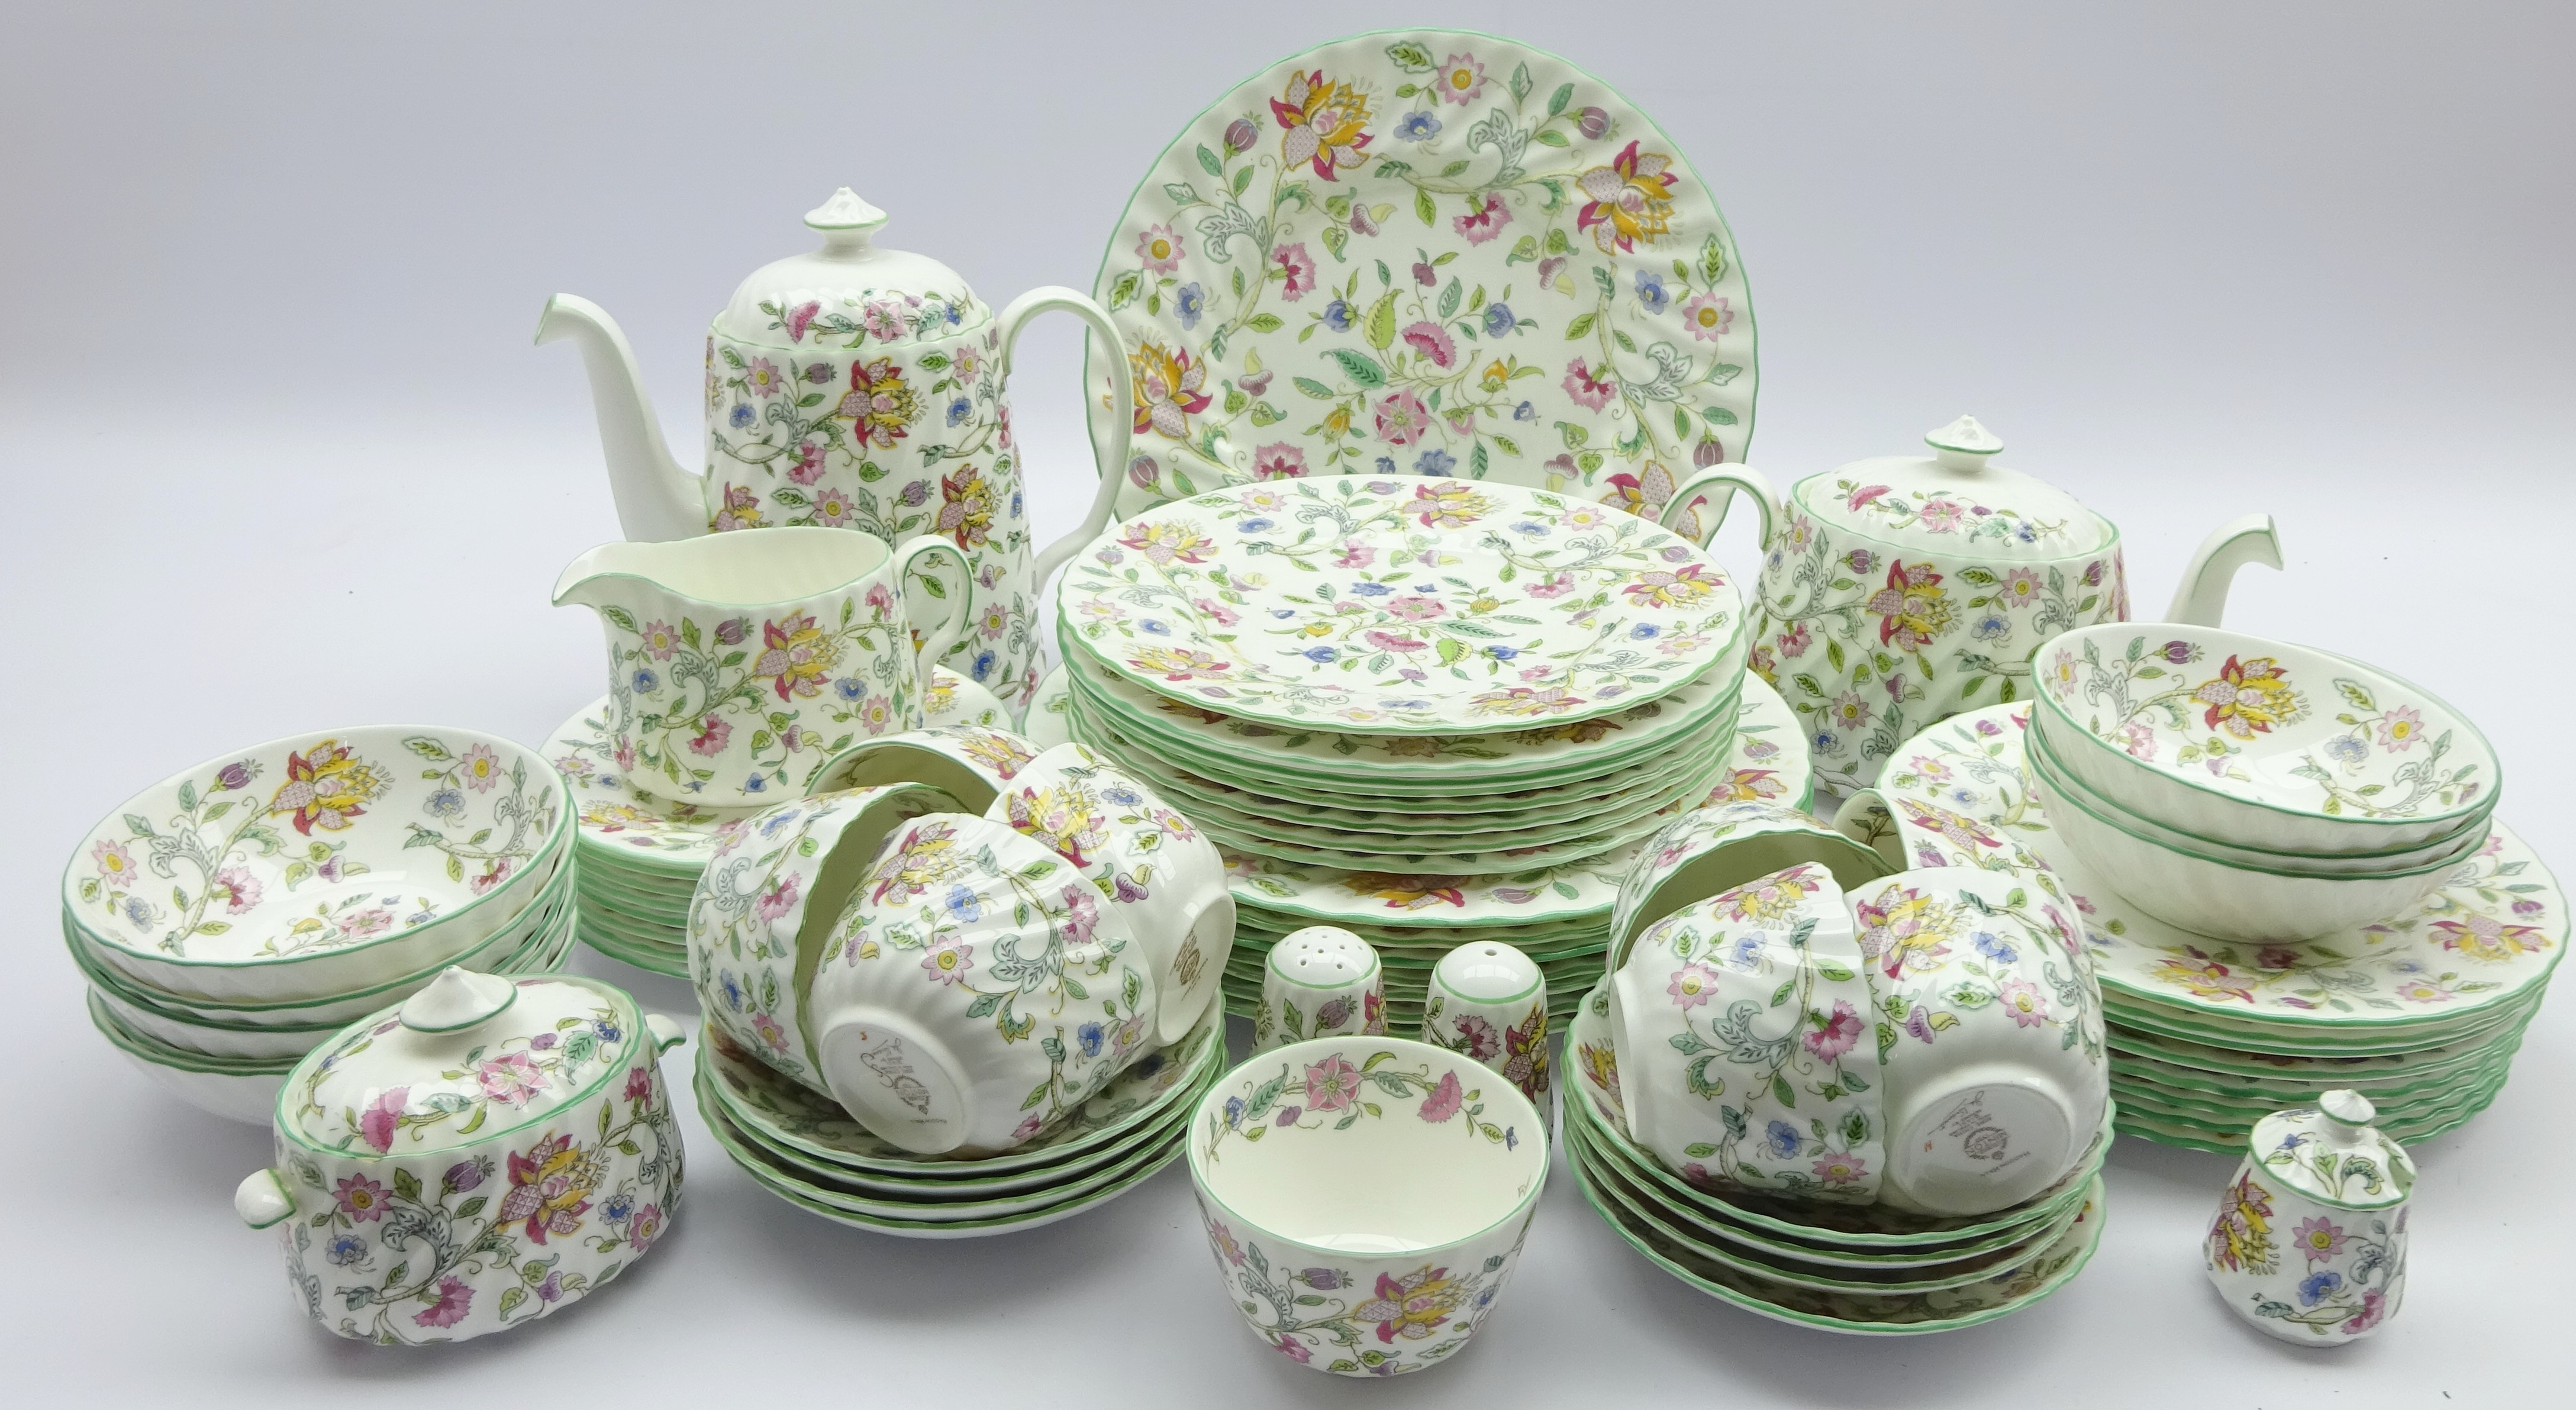 Lot 63 - Minton 'Haddon Hall' dinner and tea service, for eight persons including plates in various sizes,